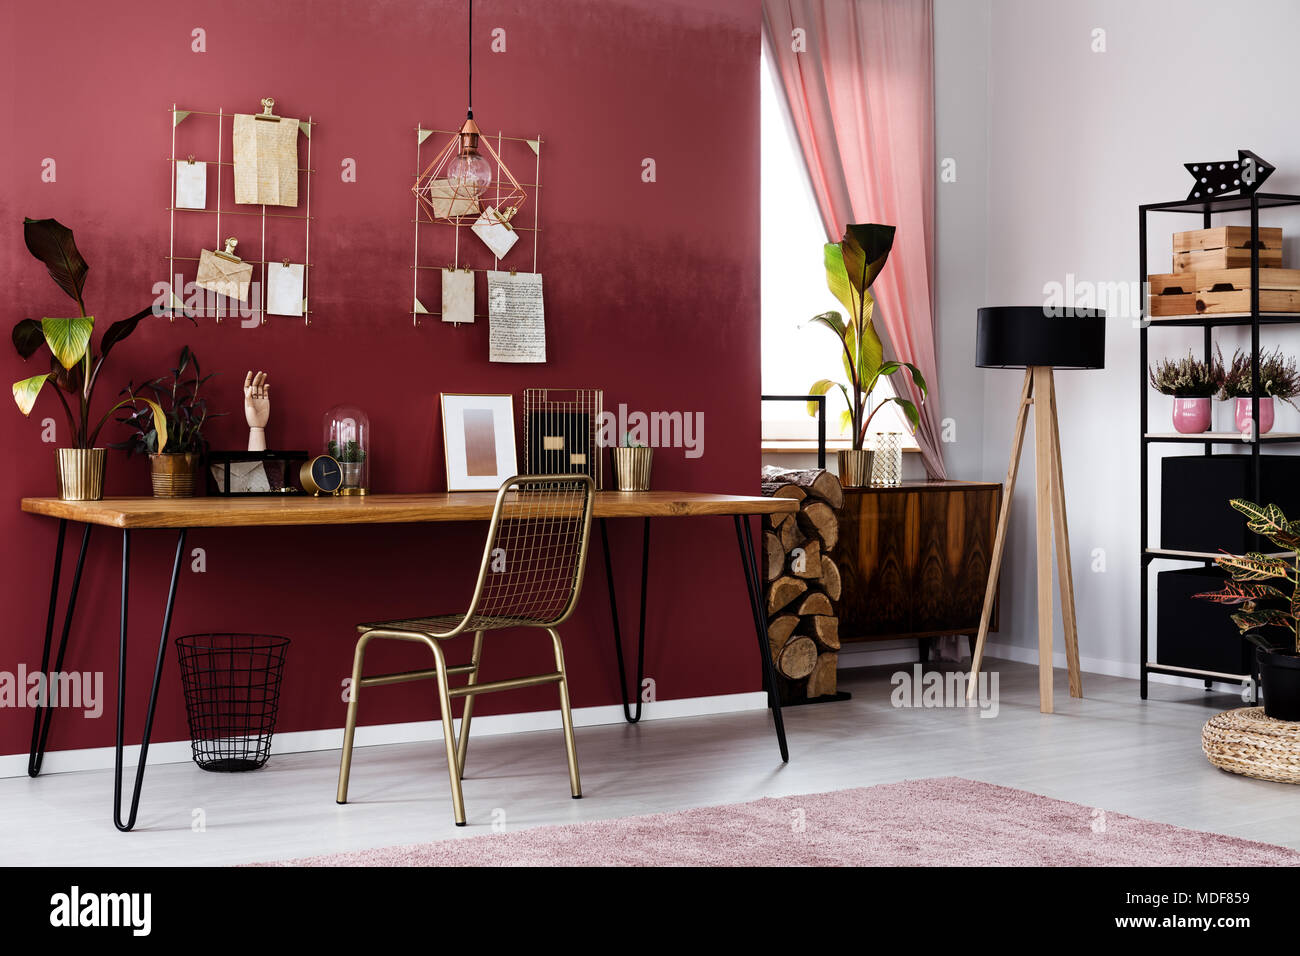 Gold chair at wooden table with poster and plant in elegant red apartment interior with lamp - Stock Image